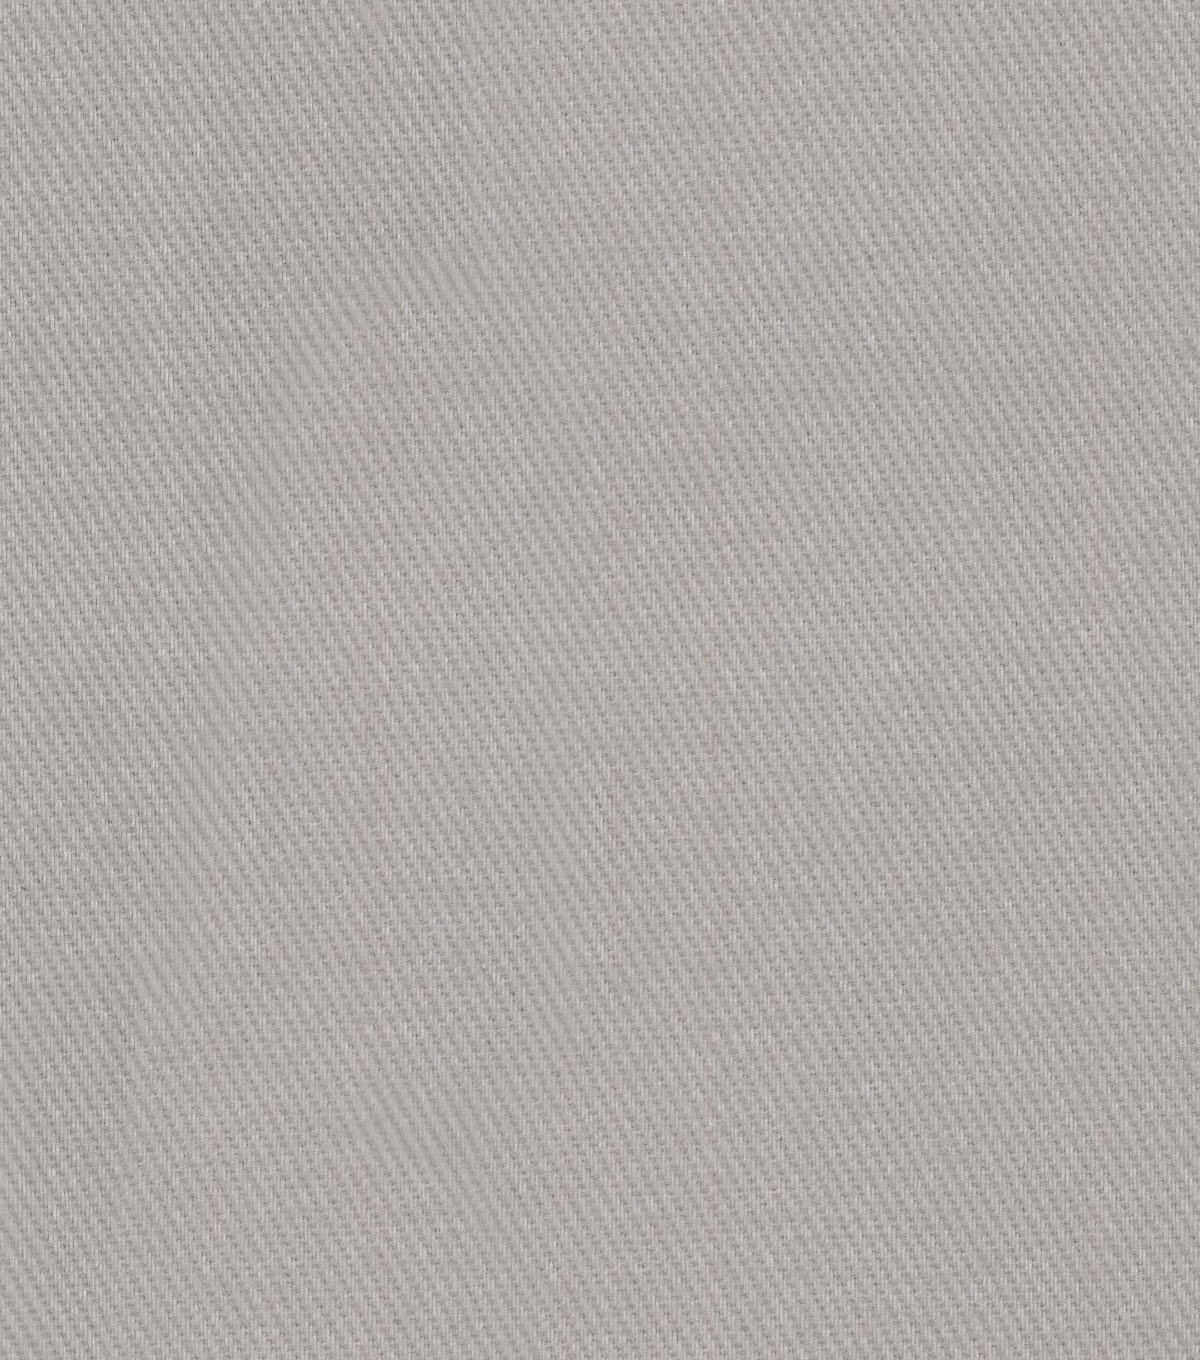 P/K Lifestyles Upholstery Fabric 57\u0027\u0027-Fog Bentley Twill